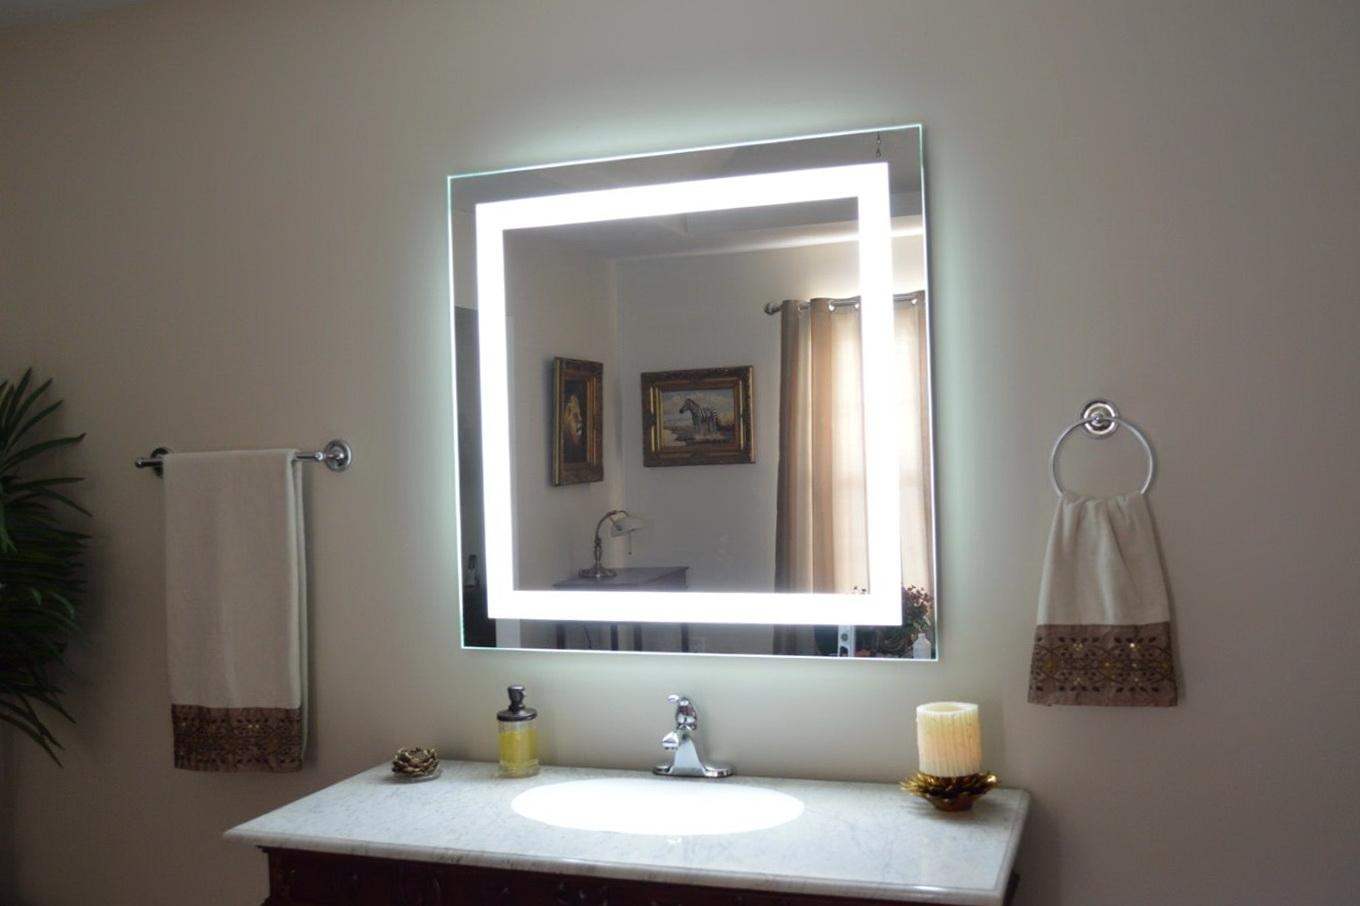 Ikea Bathroom Wall Mirror With Lights Square – Decofurnish Intended For Lights For Bathroom Mirrors (View 16 of 20)